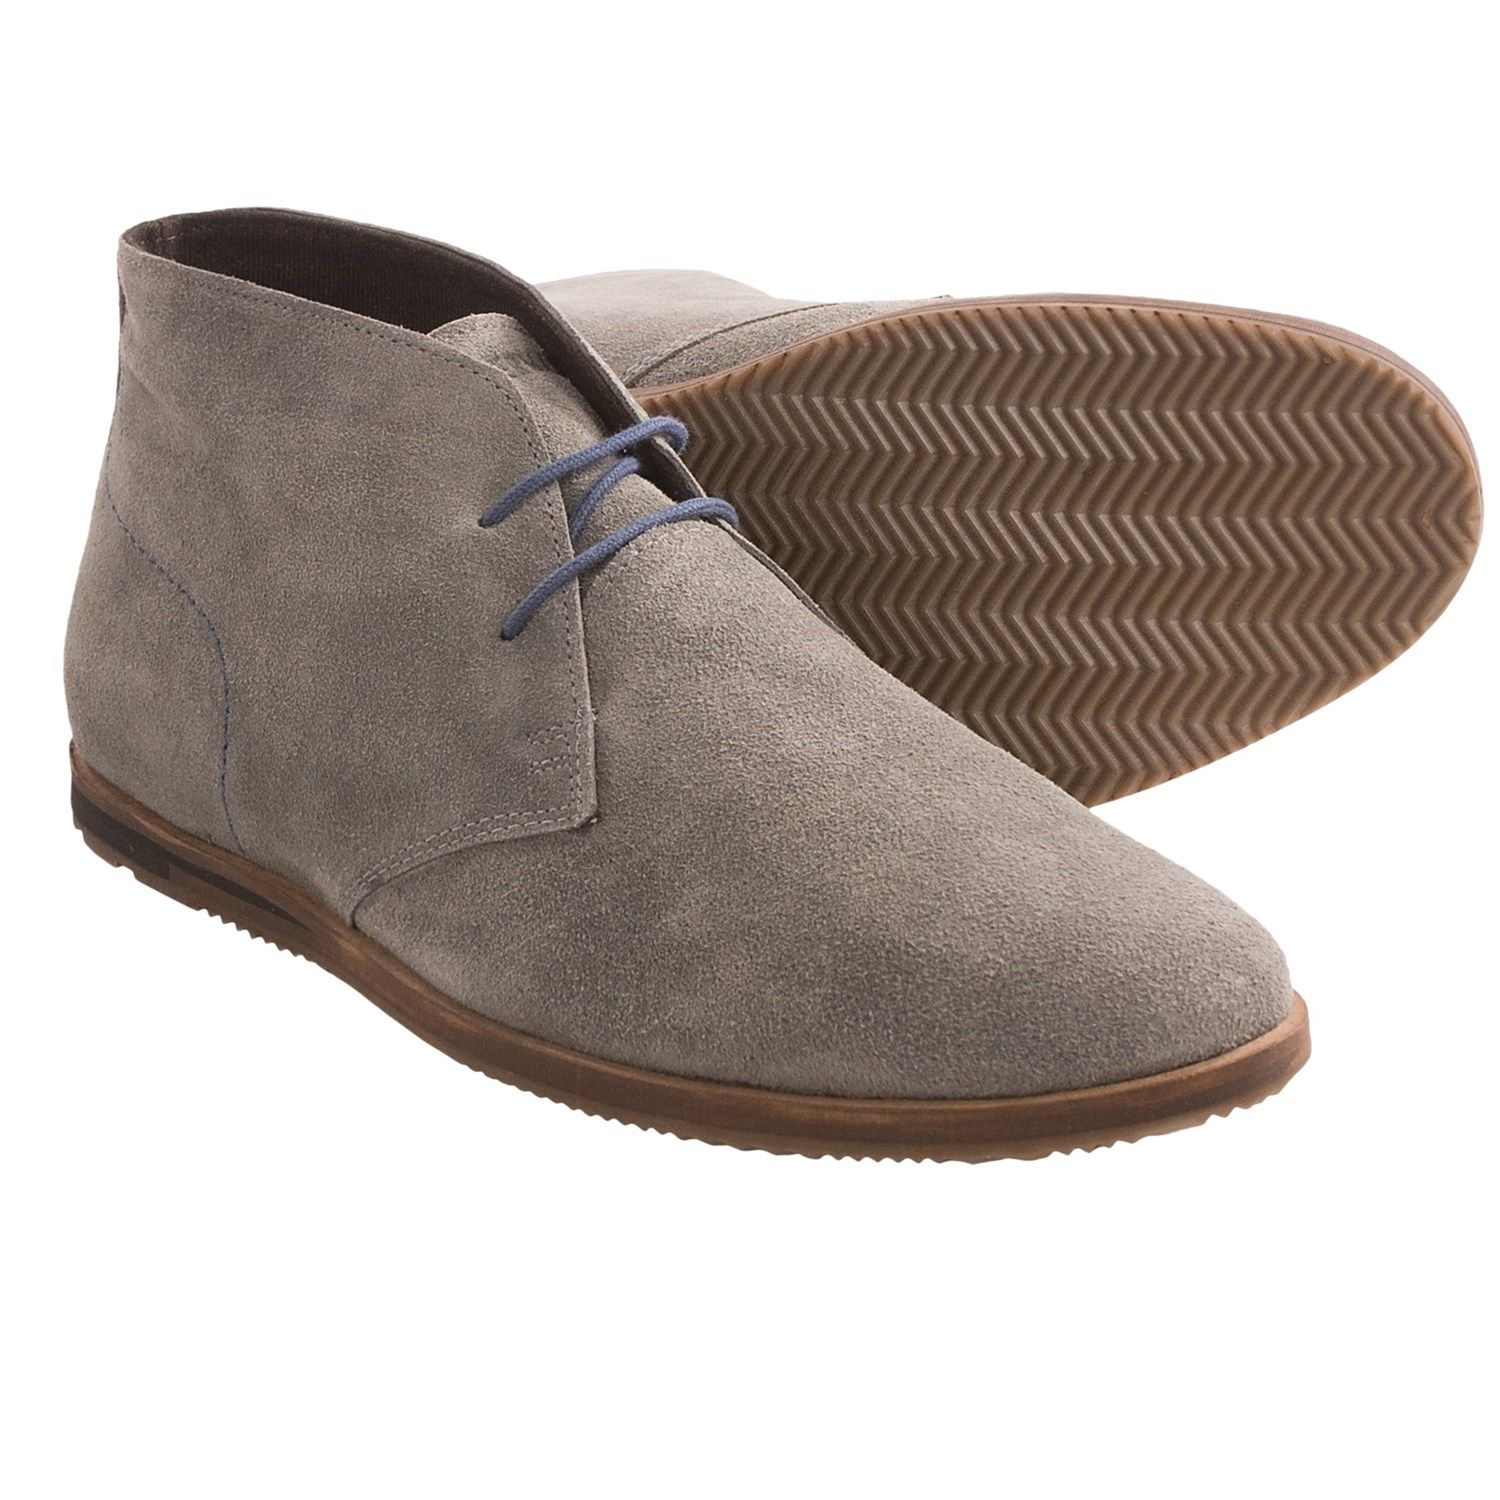 Ben Sherman Aberdeen Boots - Suede, Chukkas (For Men)